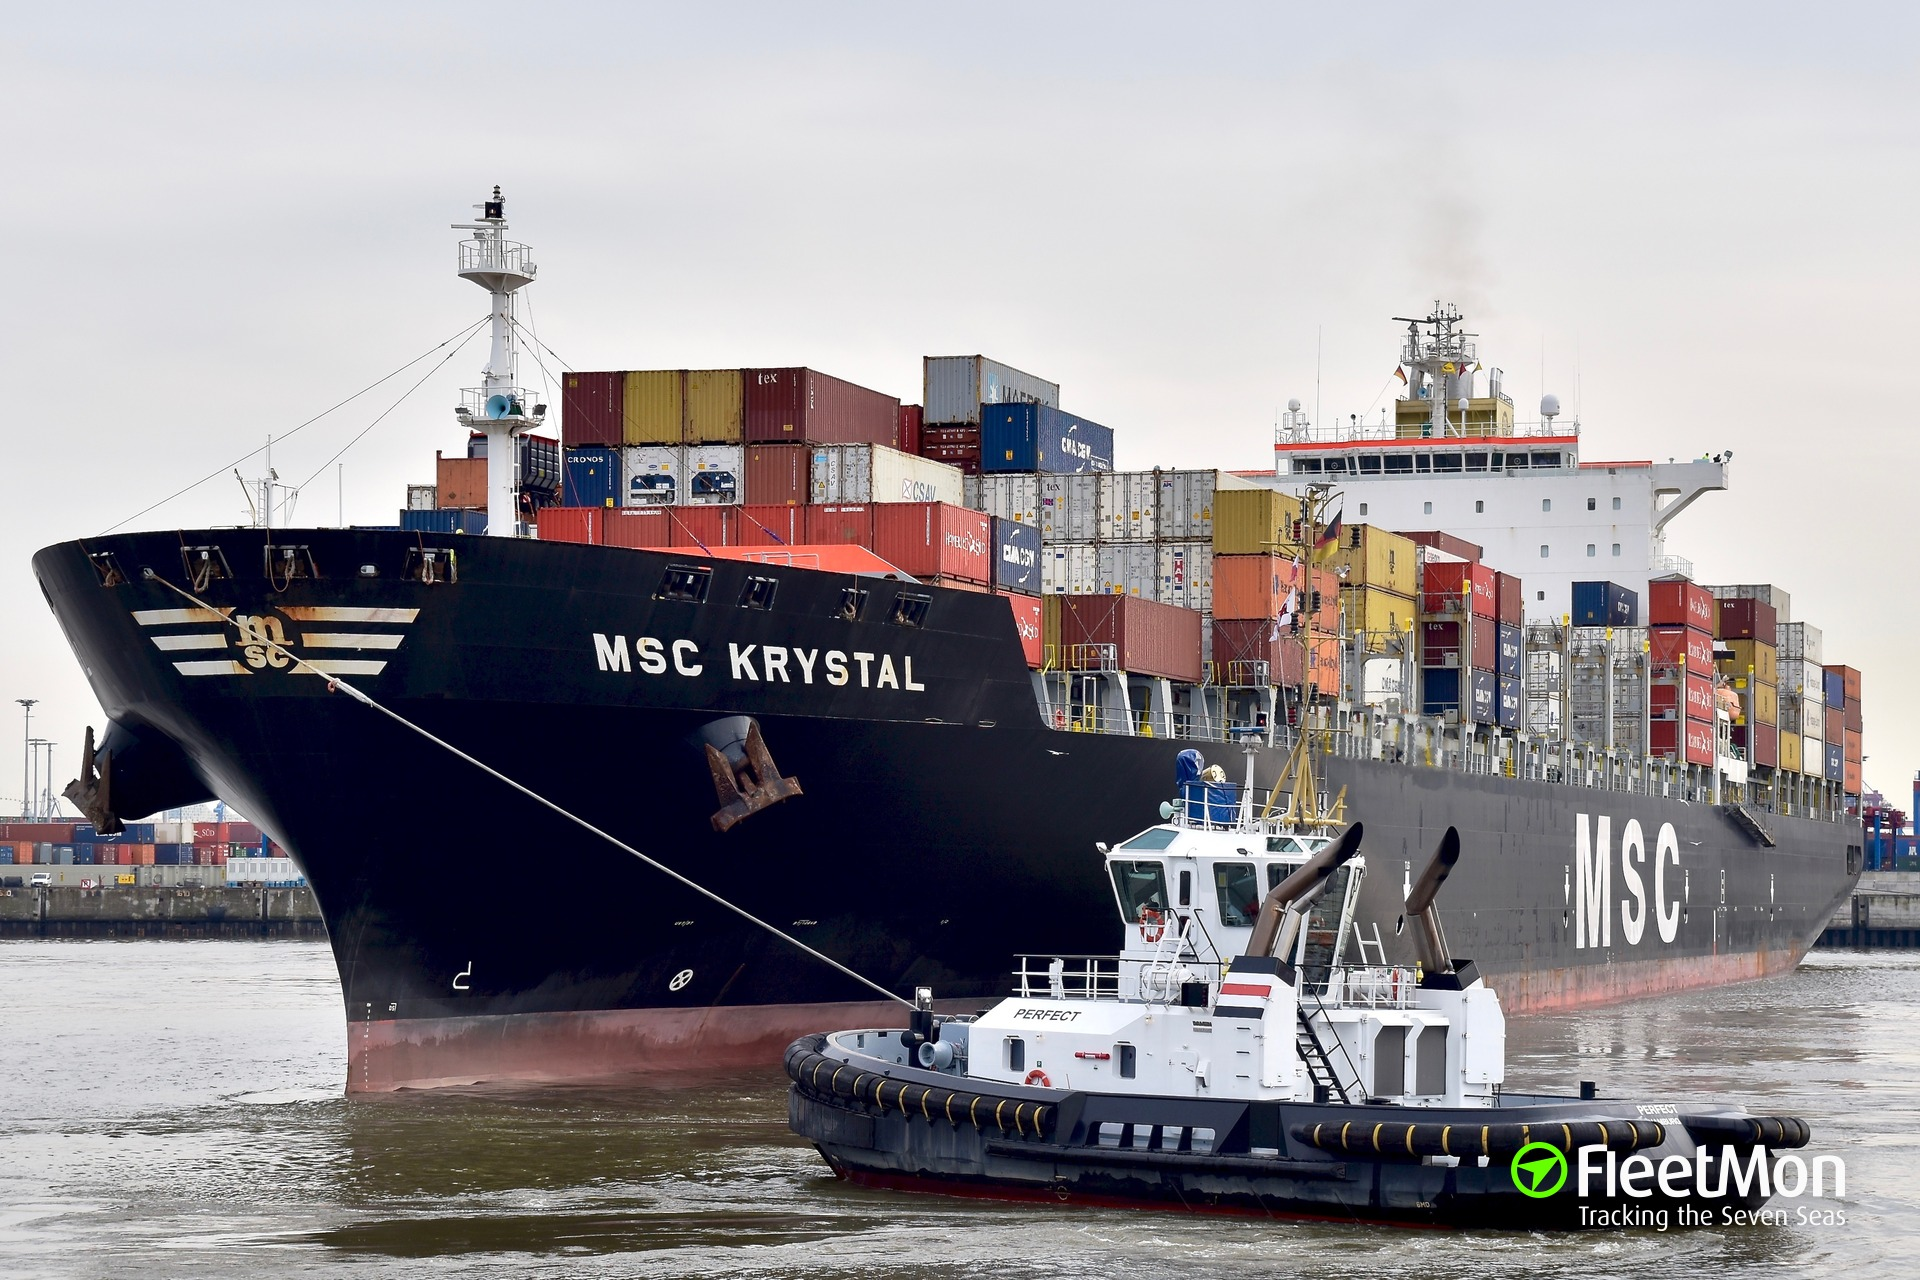 350 kilo of cocaine found on MSC Krystal, Brazil